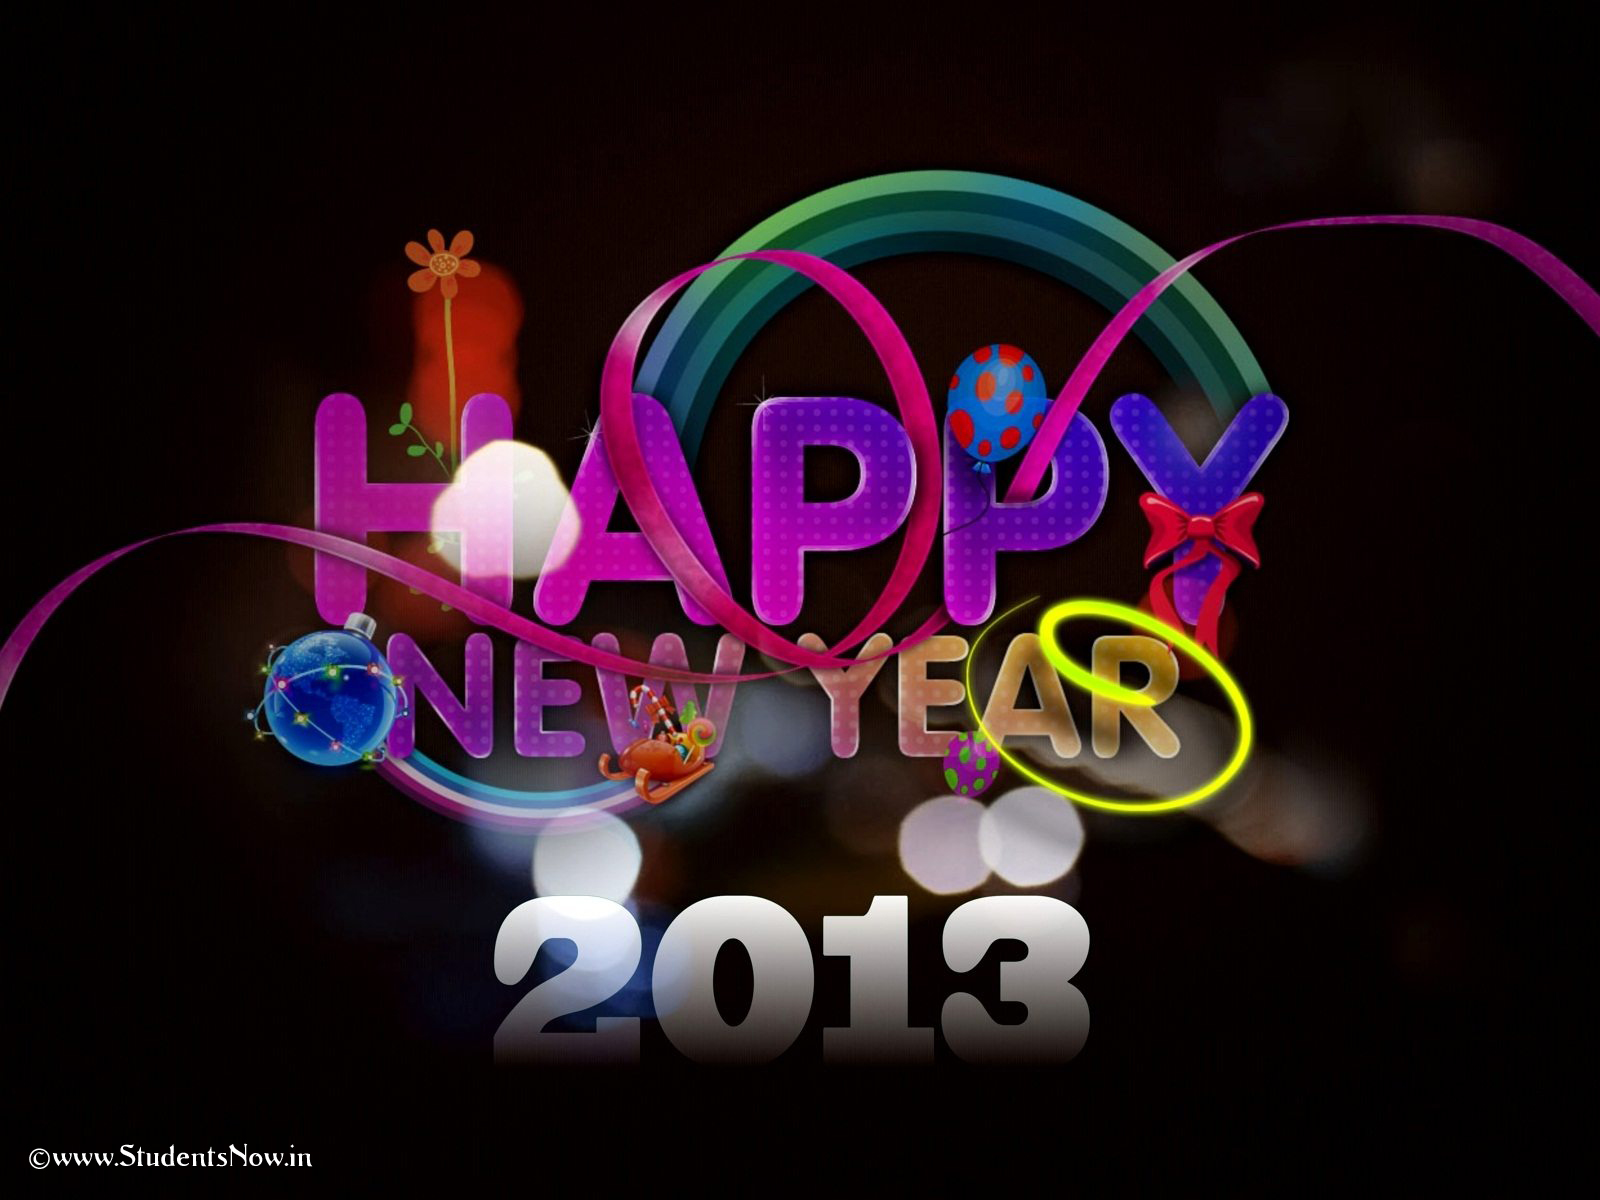 New Year  2013 Greetings  2013 New Year Wallpapers HD. 1600 x 1200.New Year Wishes For Lover Kamakathaikal In Tamil Actress